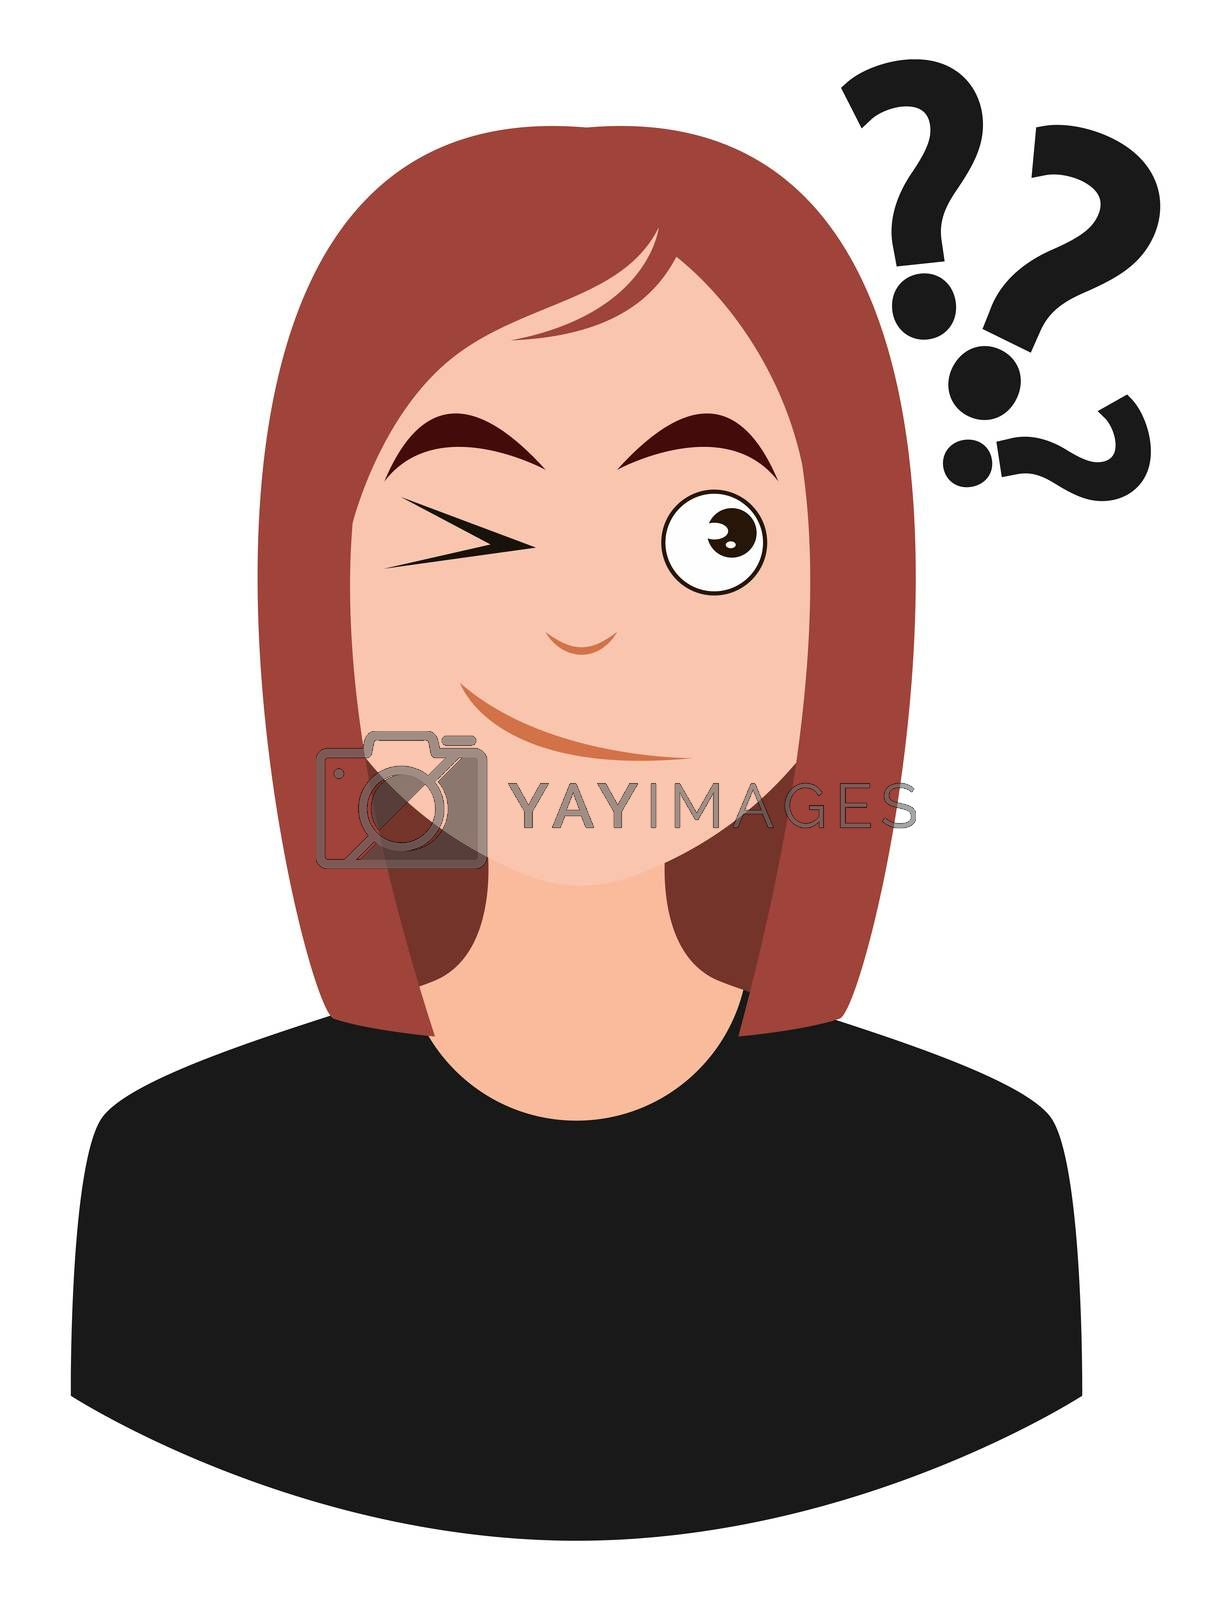 Girl with question marks, illustration, vector on white background